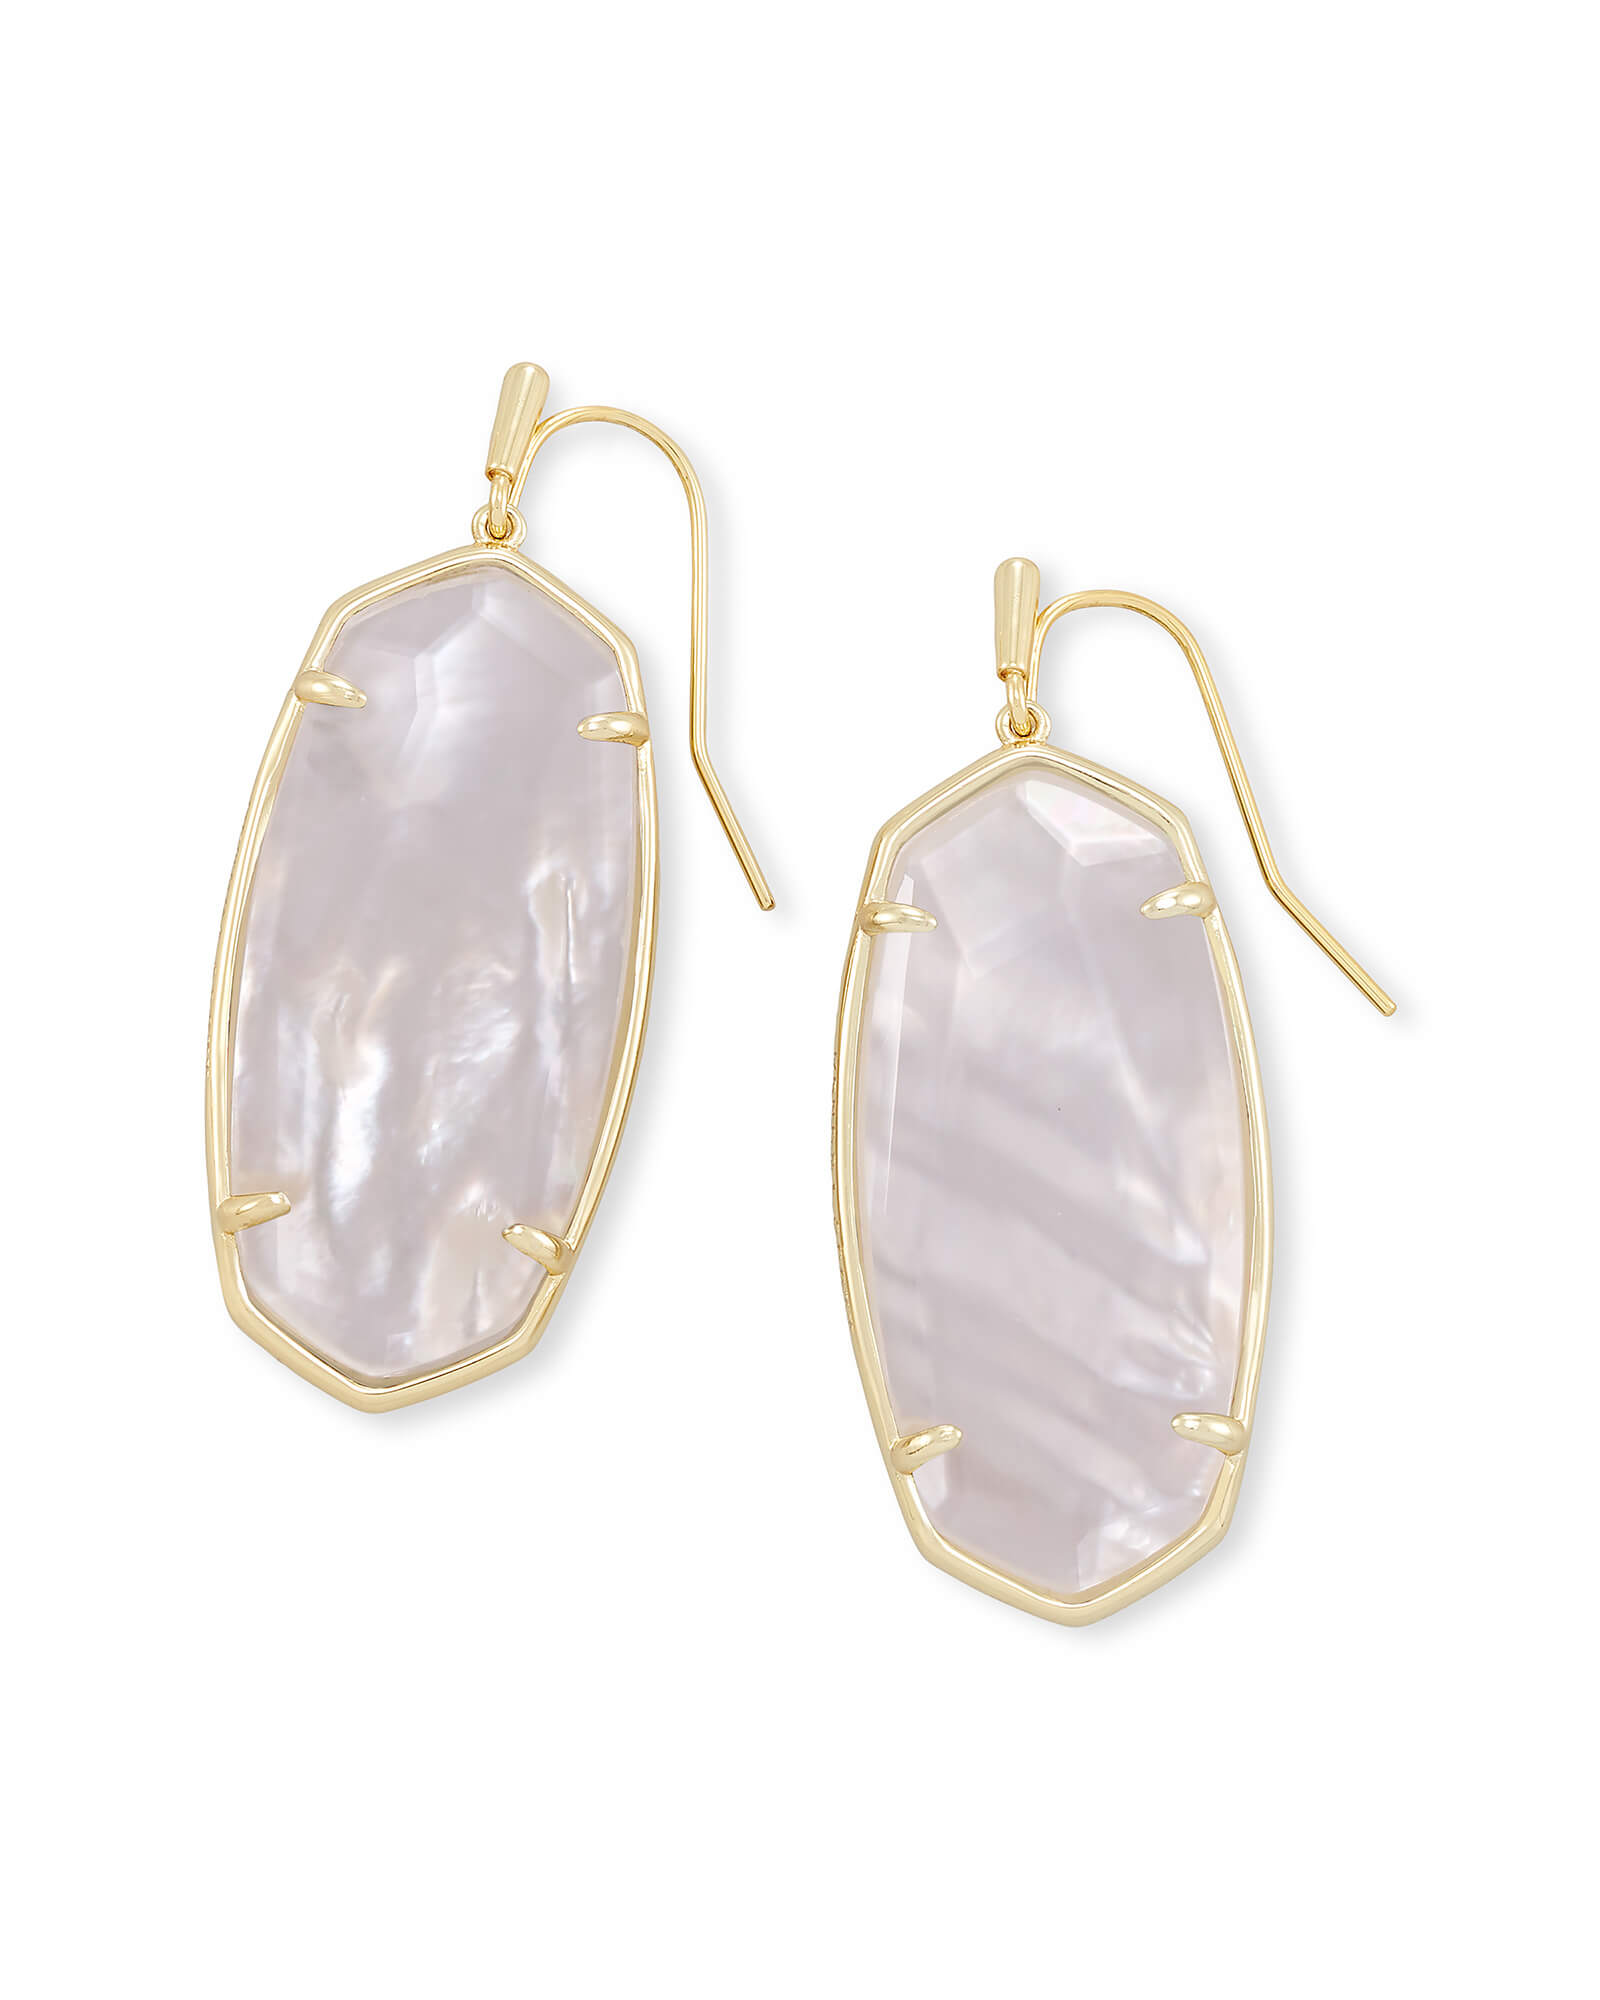 Faceted Elle Gold Drop Earrings in Ivory Mother-of-Pearl